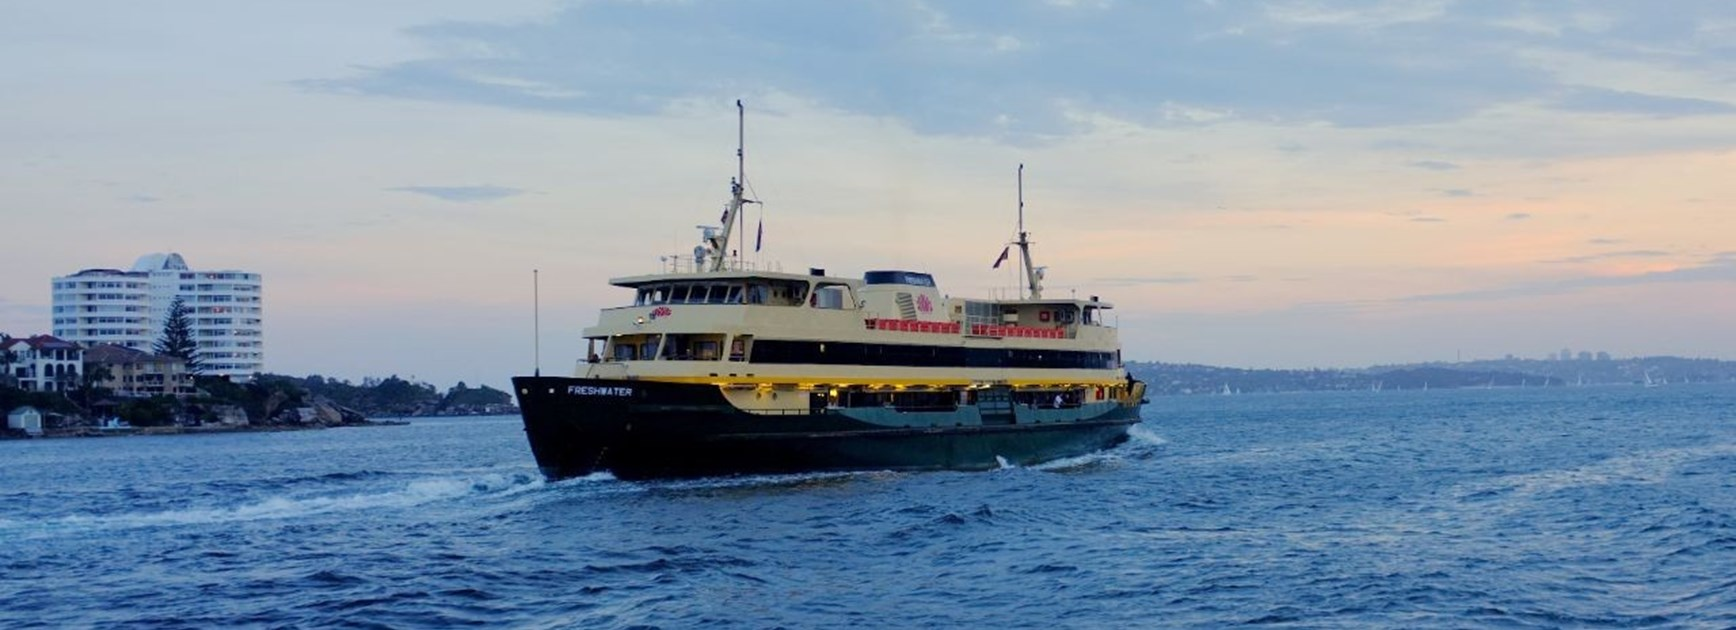 Catch a Manly Ferry for Roosters game